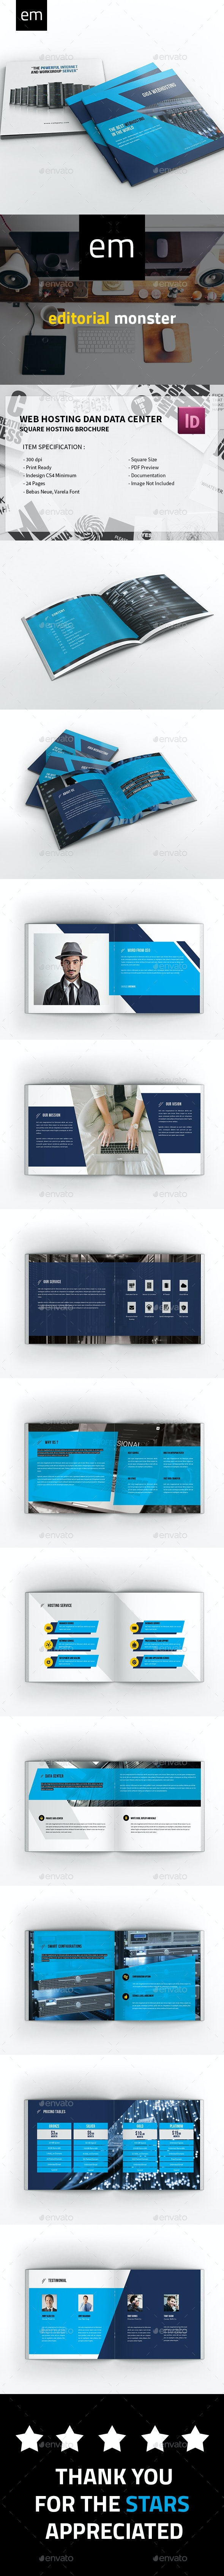 Web Hosting and Data Center Brochure Square - Corporate Brochures